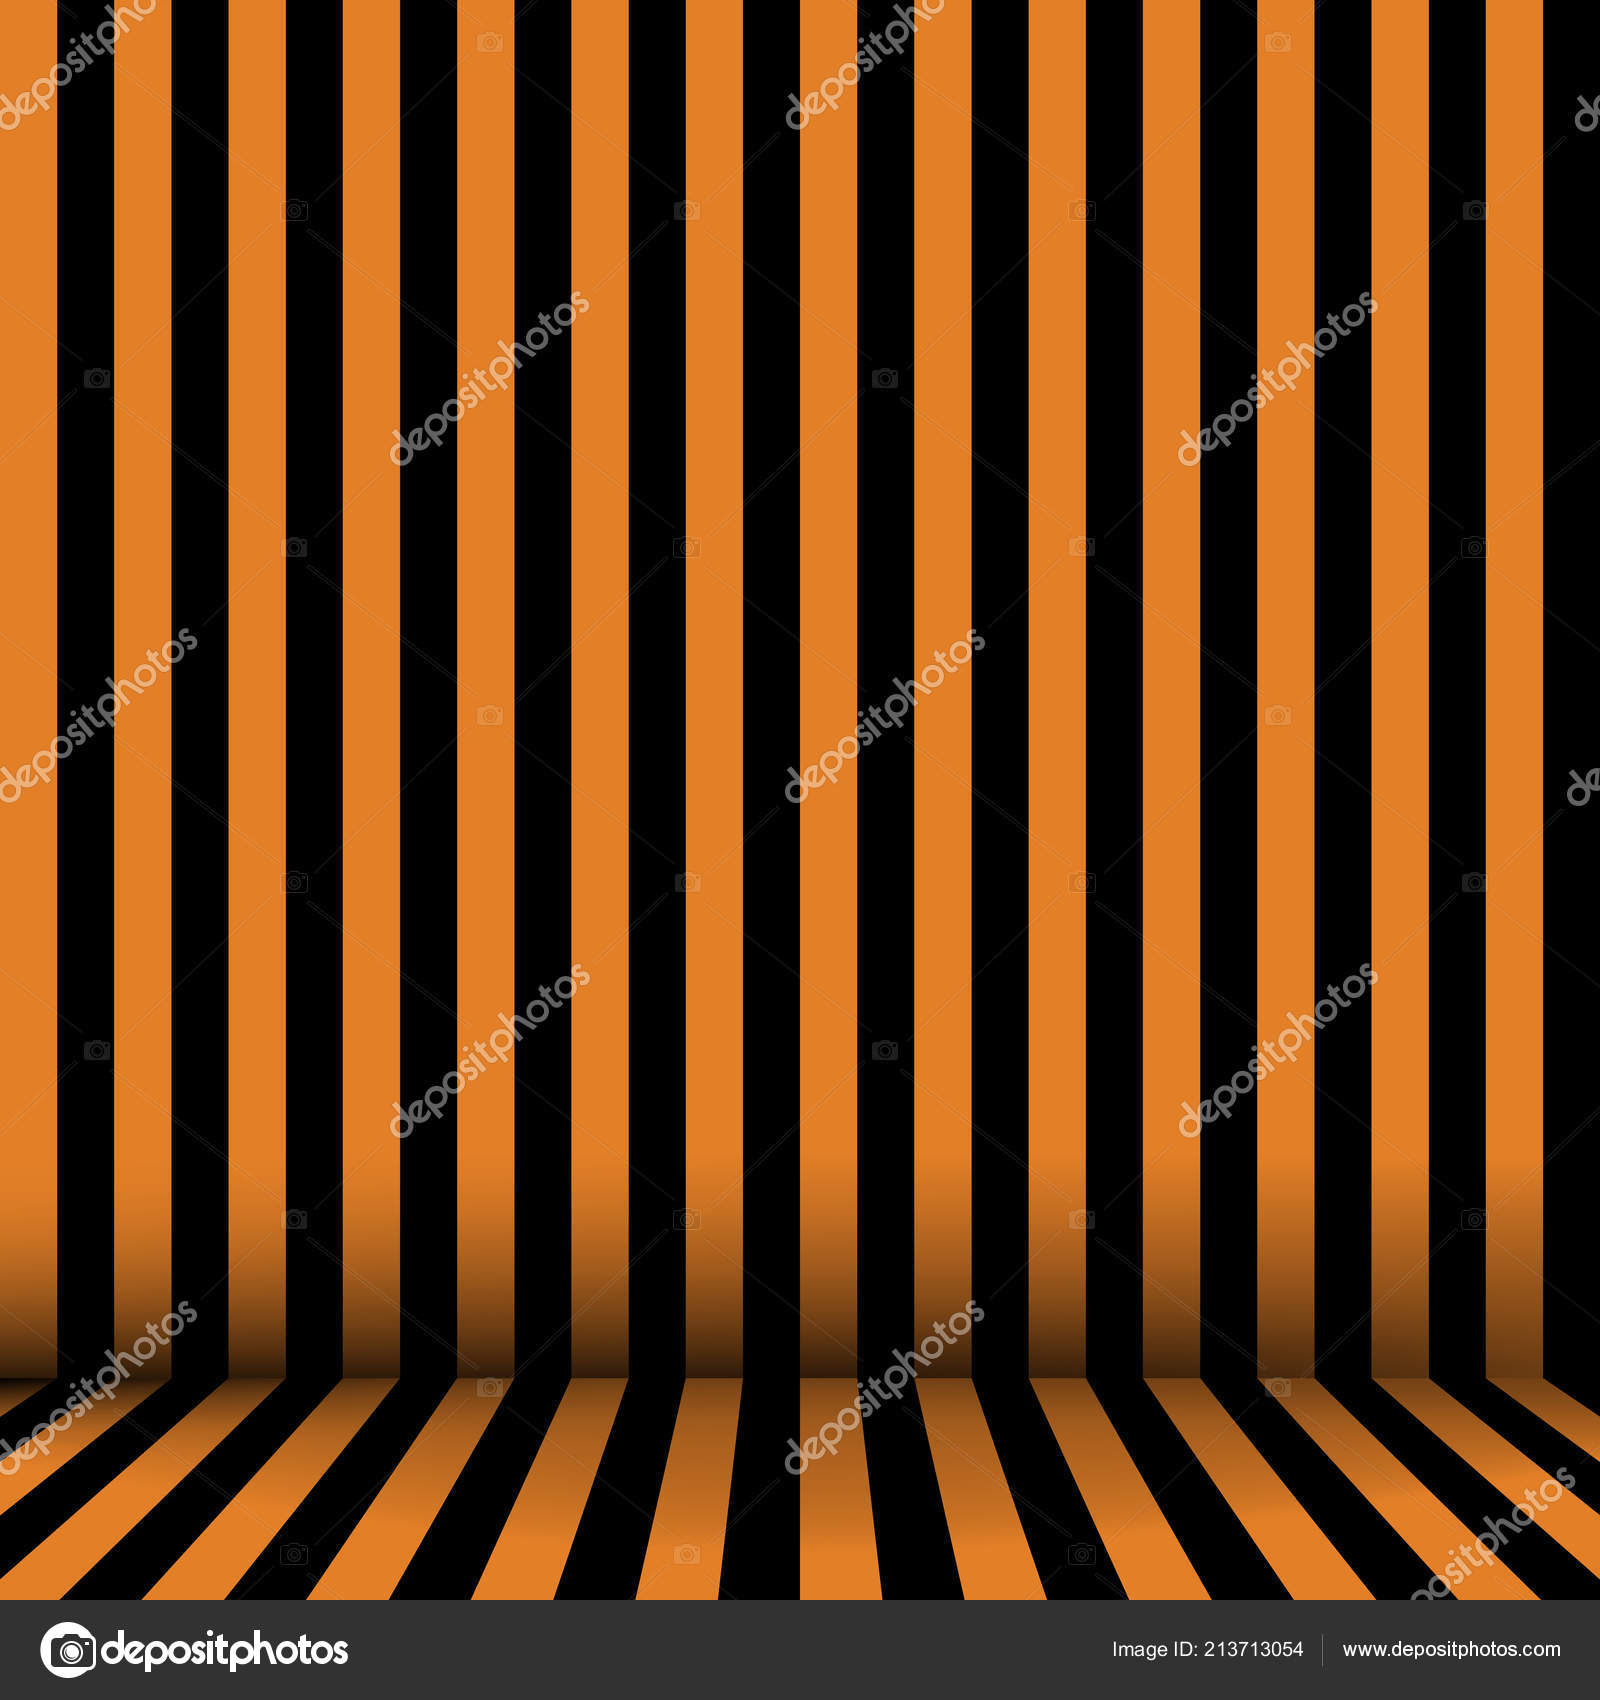 Captivant Chambre En Orange Et Noir à Rayures Fond Du0027Halloween. Vectoru2013 Illustration  De Stock